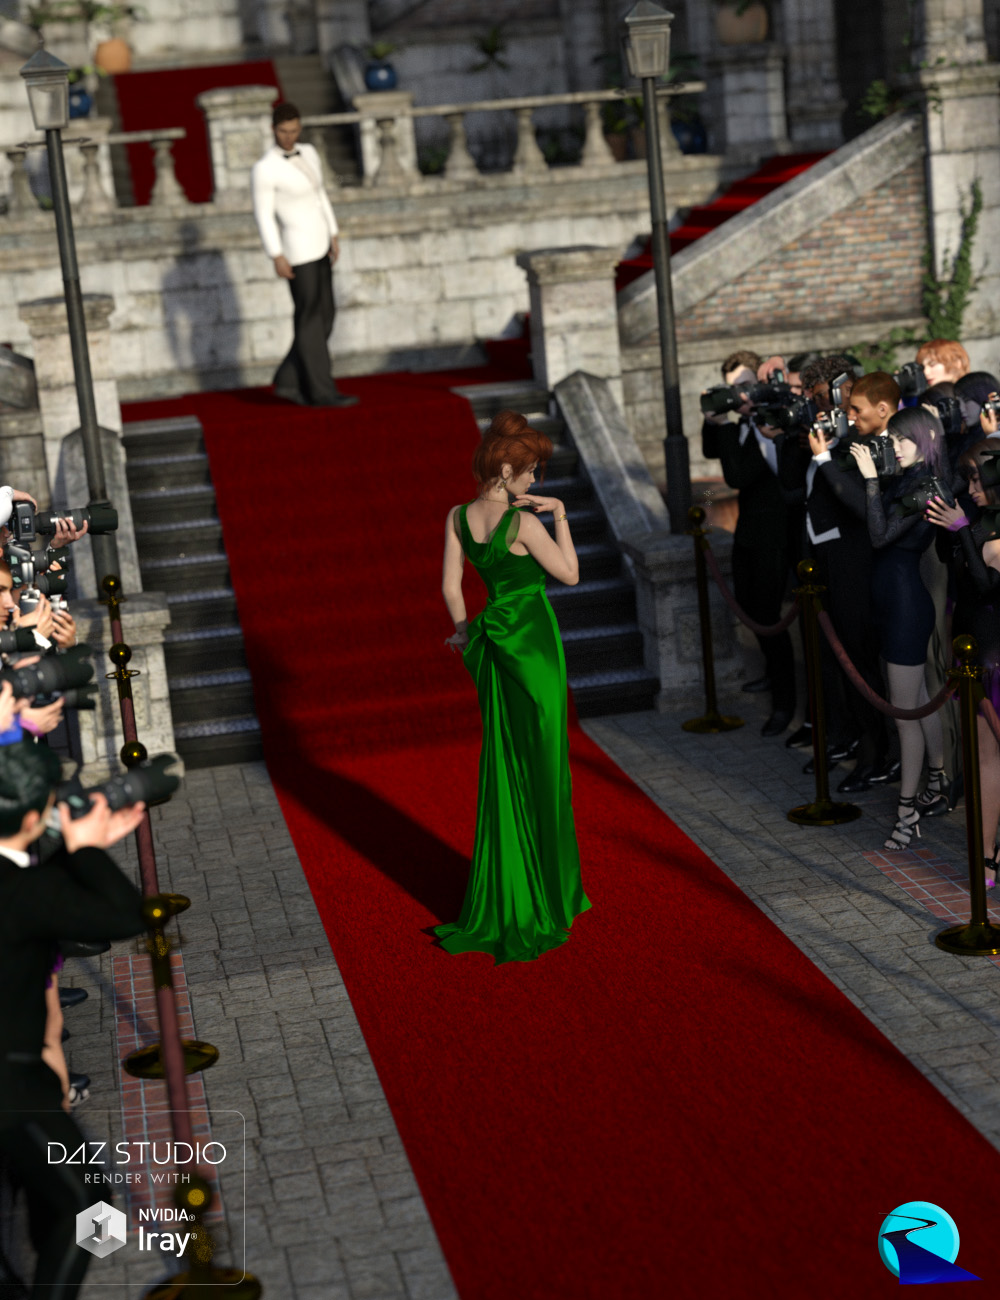 Now-Crowd Billboards - Paparazzi Award Photographers by: RiverSoft Art, 3D Models by Daz 3D